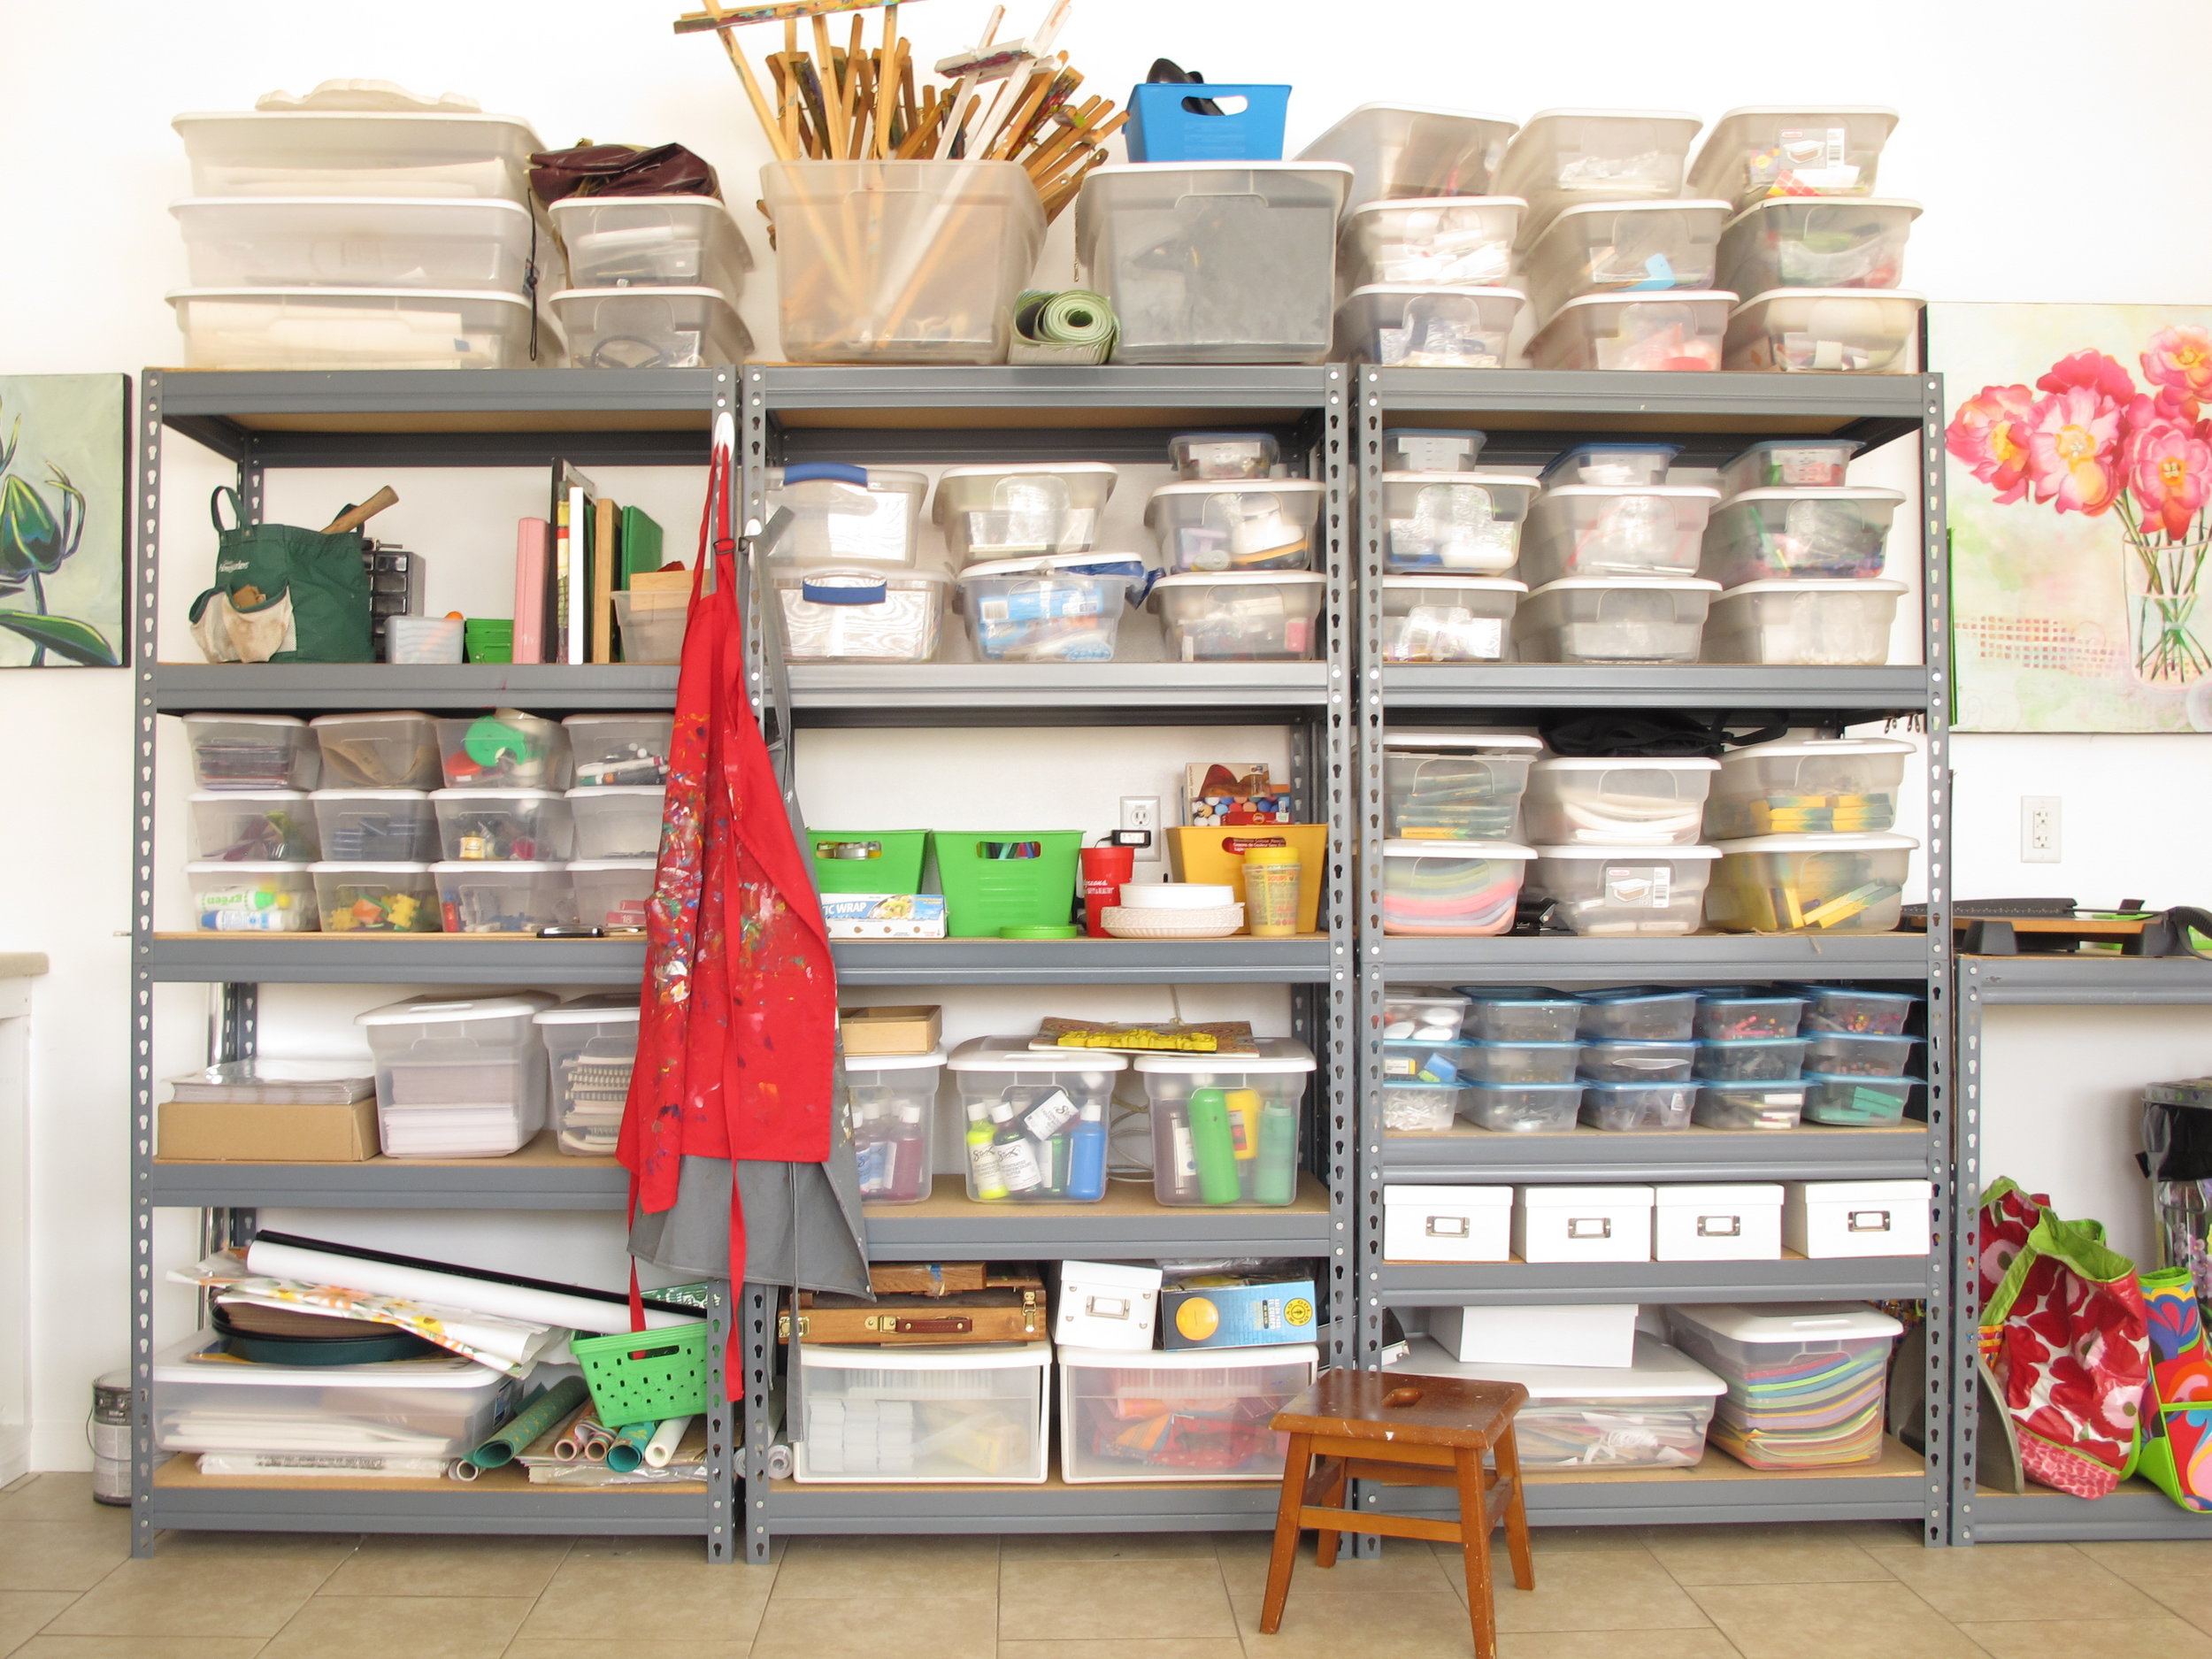 #2 Organization        is a must for        my creativity. -